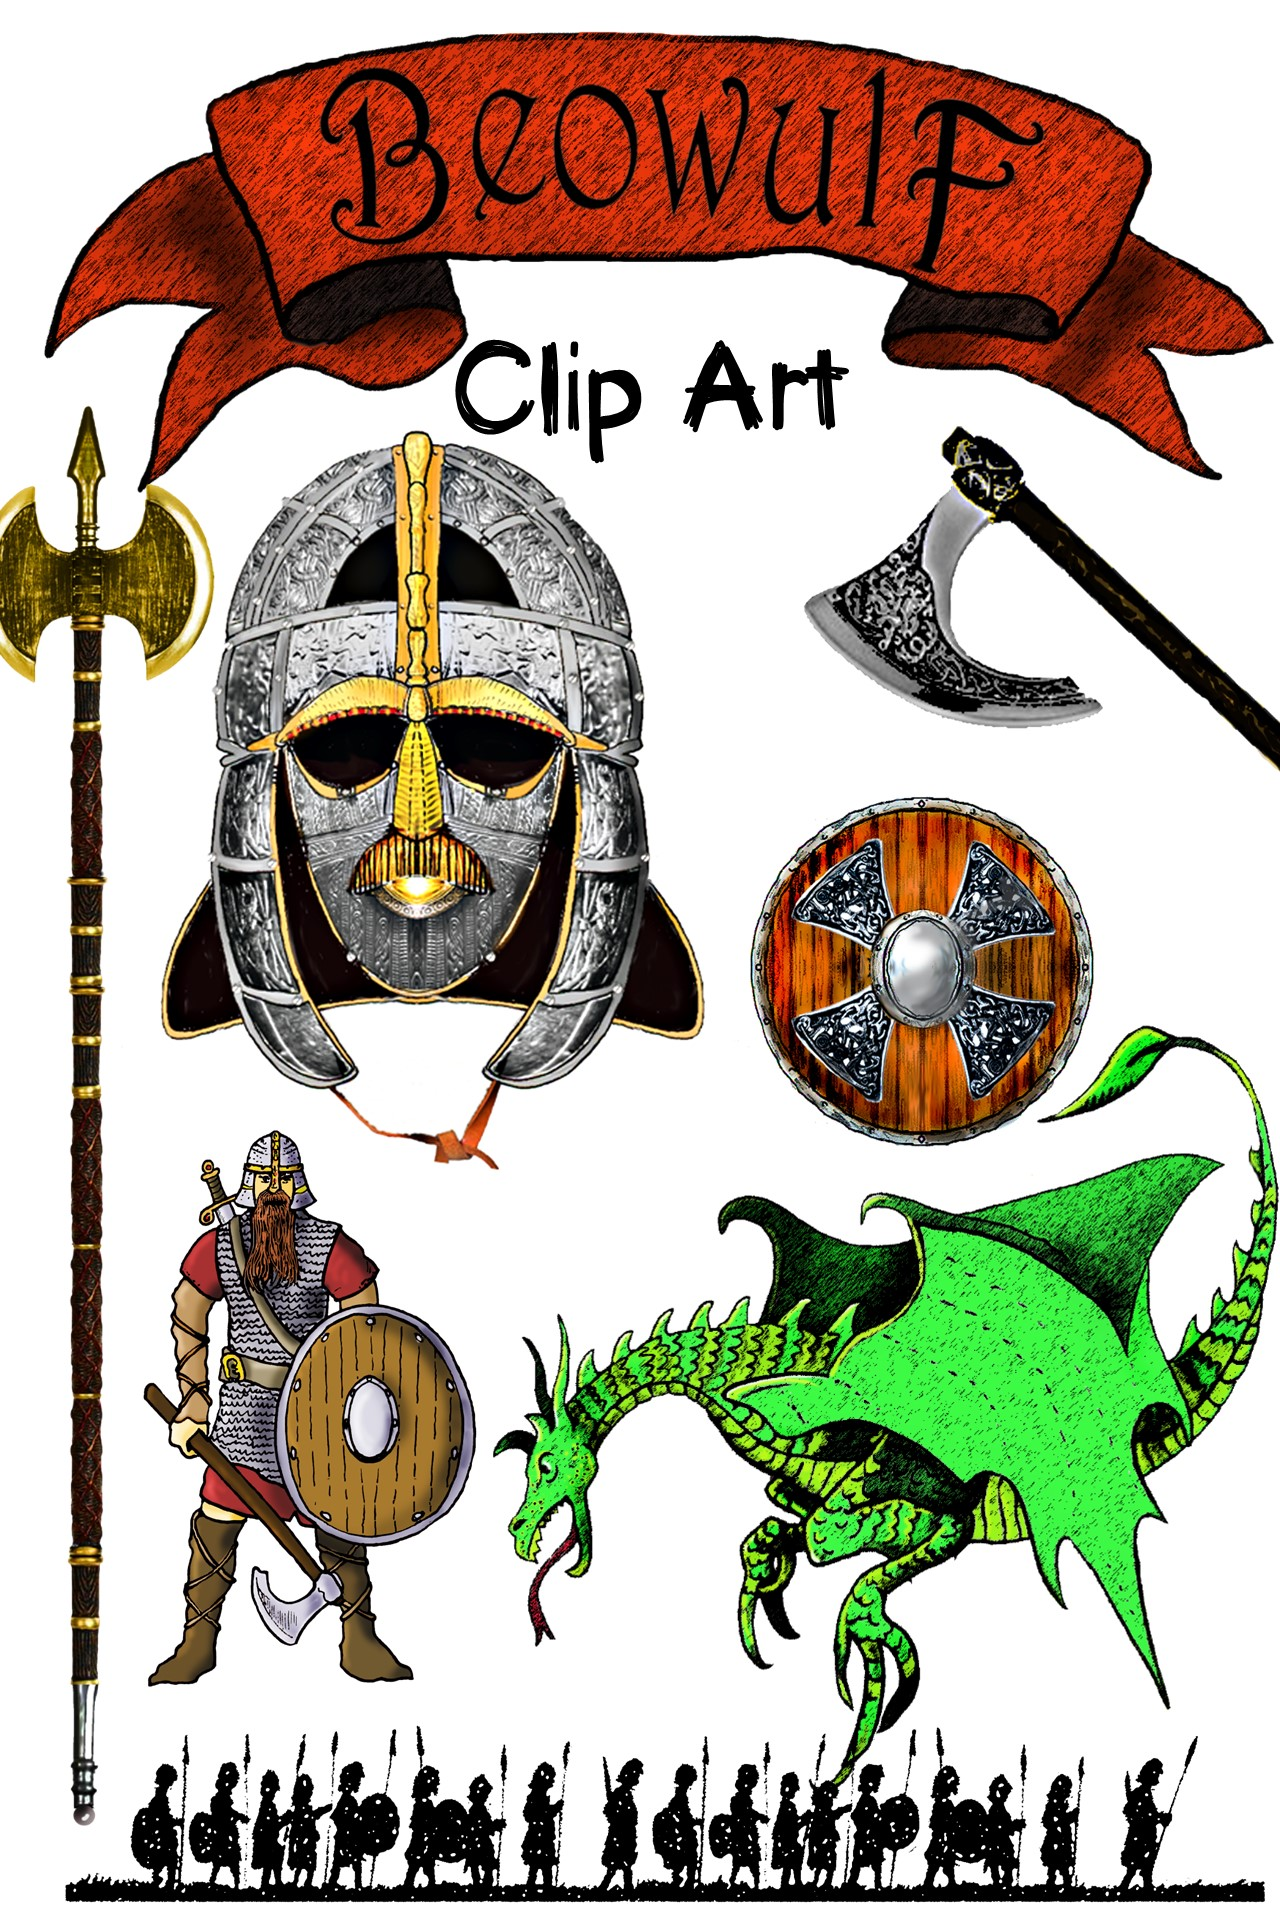 Coture clipart english language development Beowulf Clipart Beowulf board Bulletin